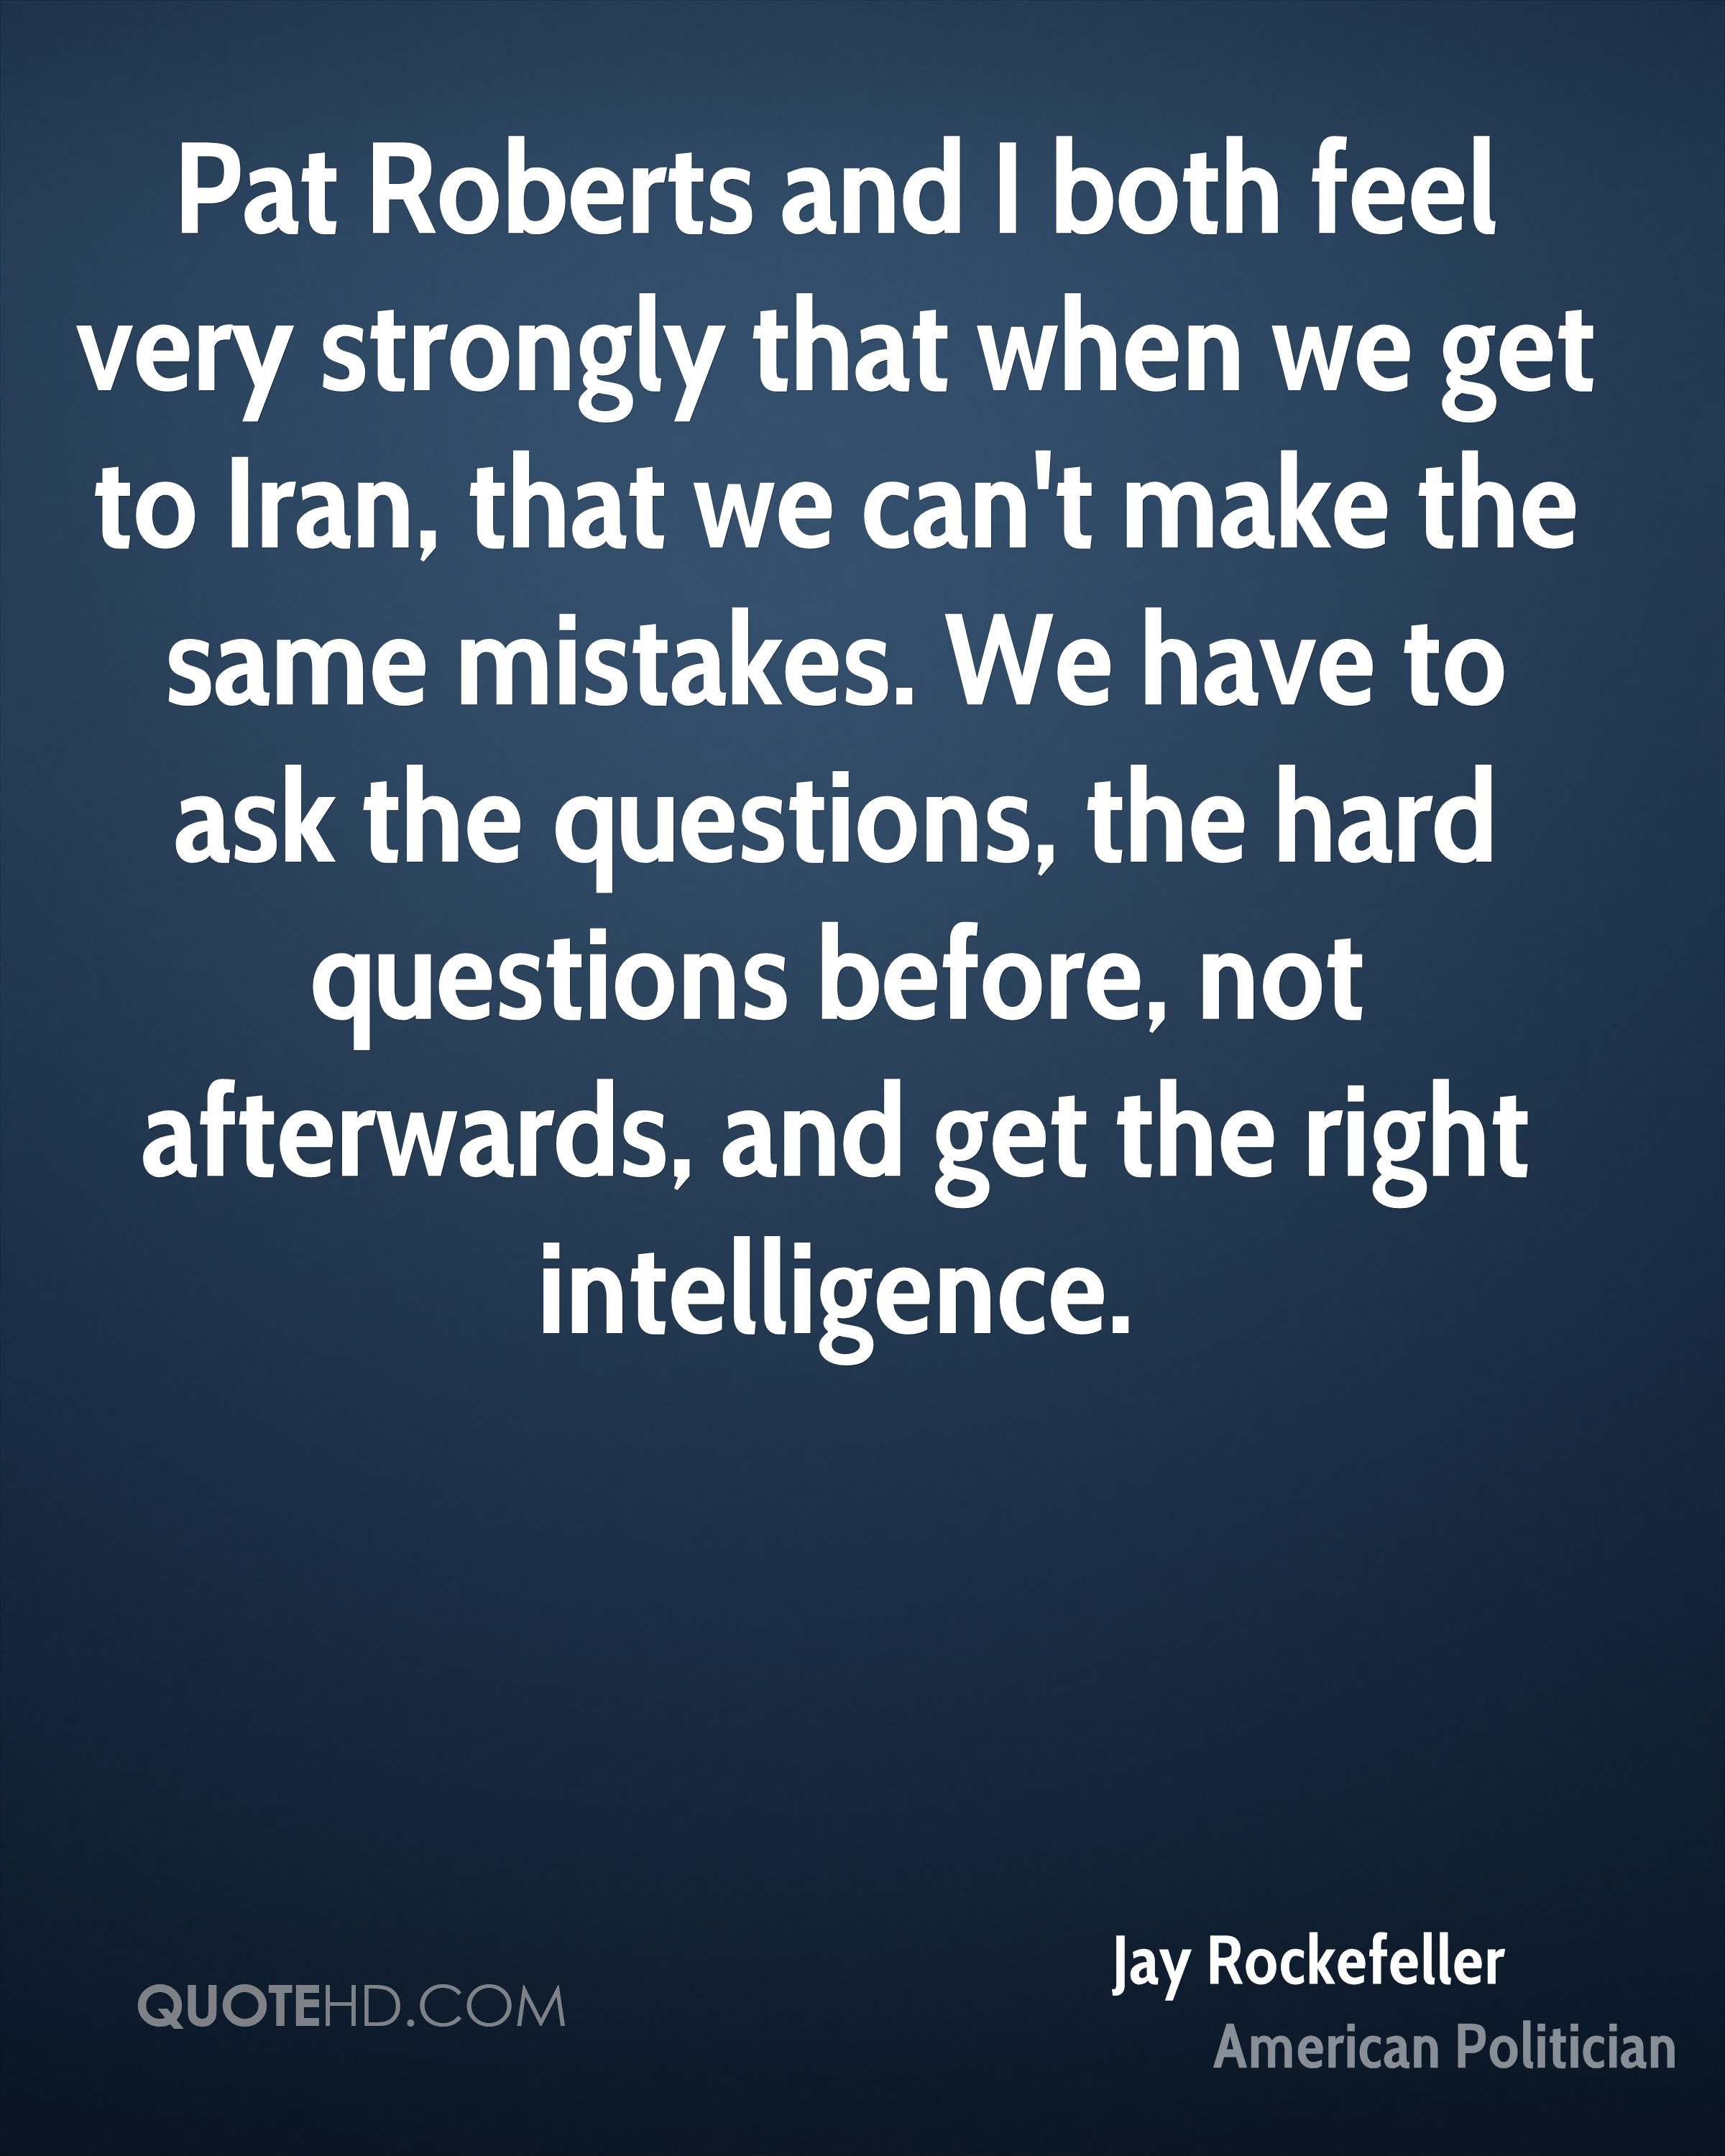 Pat Roberts and I both feel very strongly that when we get to Iran, that we can't make the same mistakes. We have to ask the questions, the hard questions before, not afterwards, and get the right intelligence.